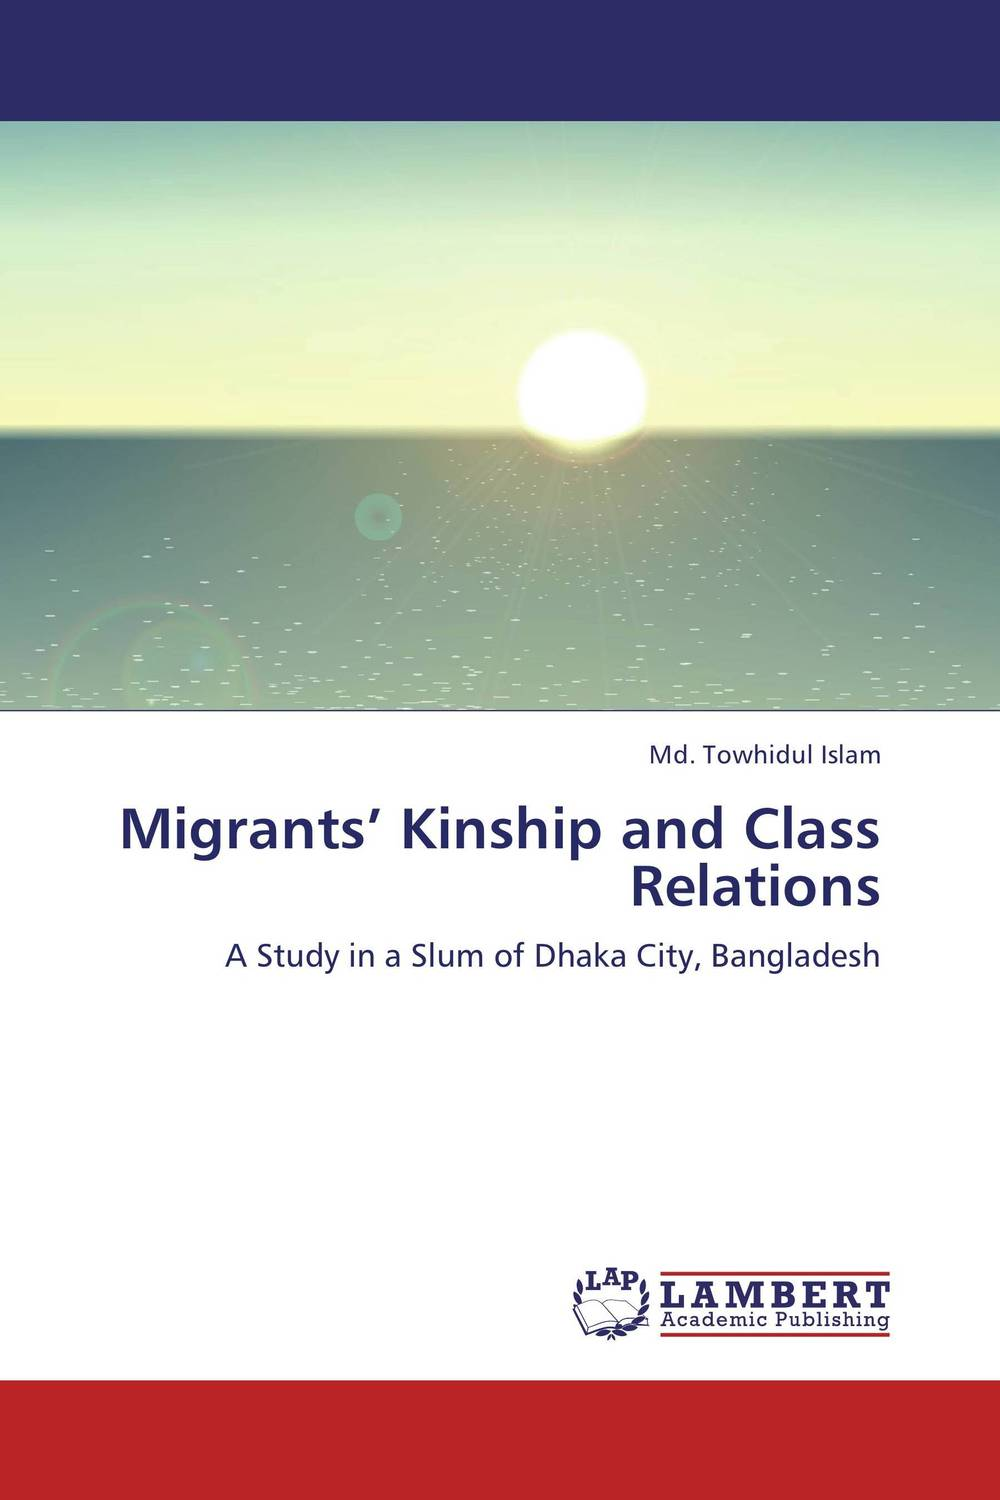 Migrants' Kinship and Class Relations